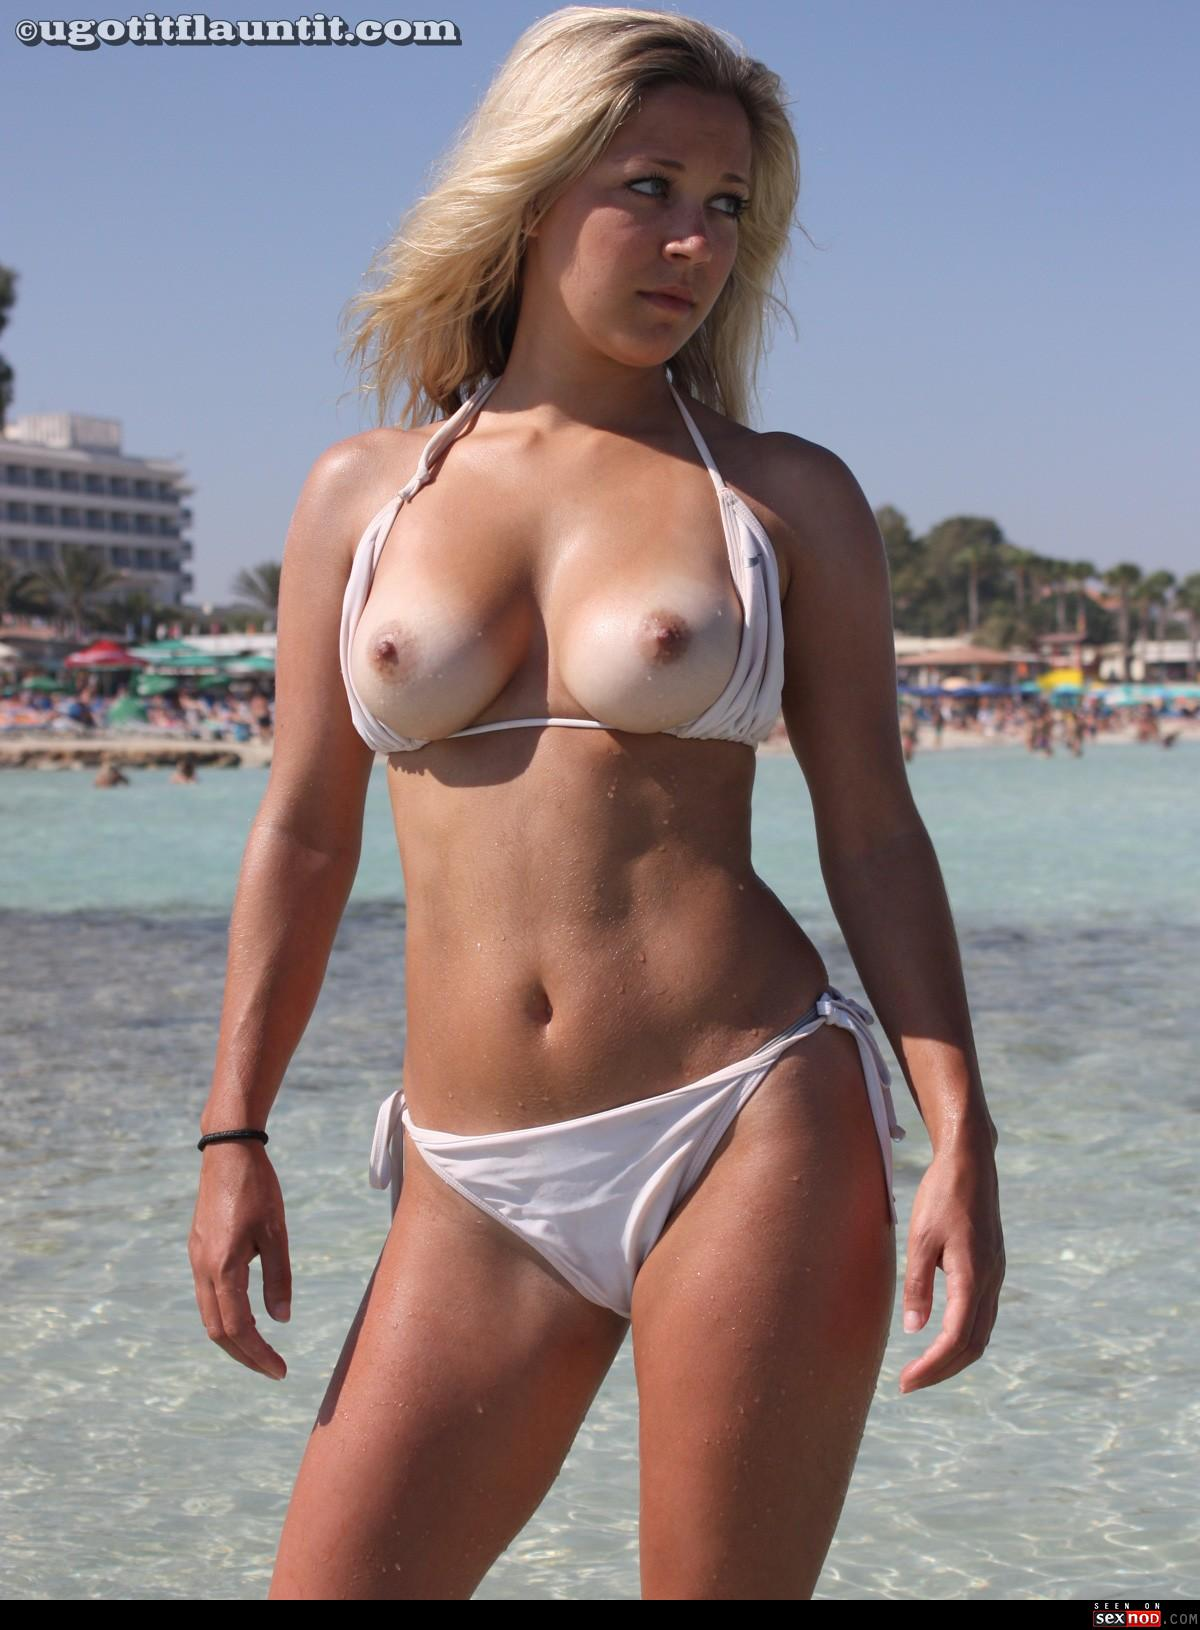 Remarkable, the Beach big bikini tit never